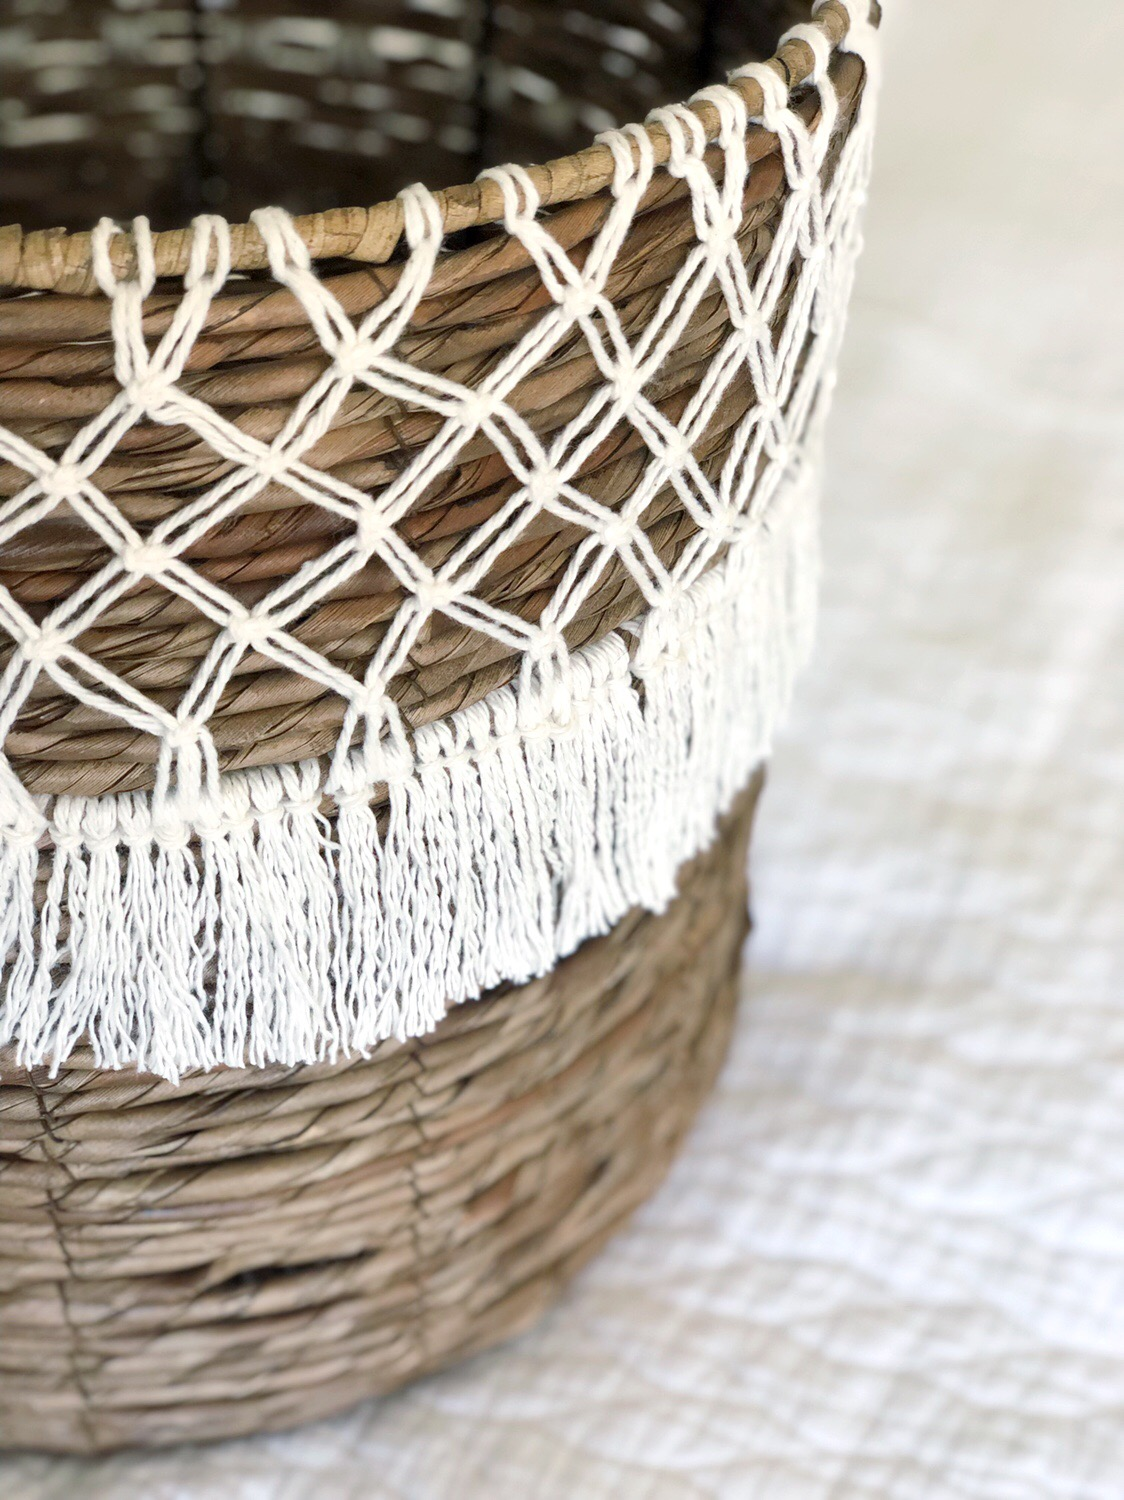 DIY Macrame Basket inspired by Anthropologie.jpg